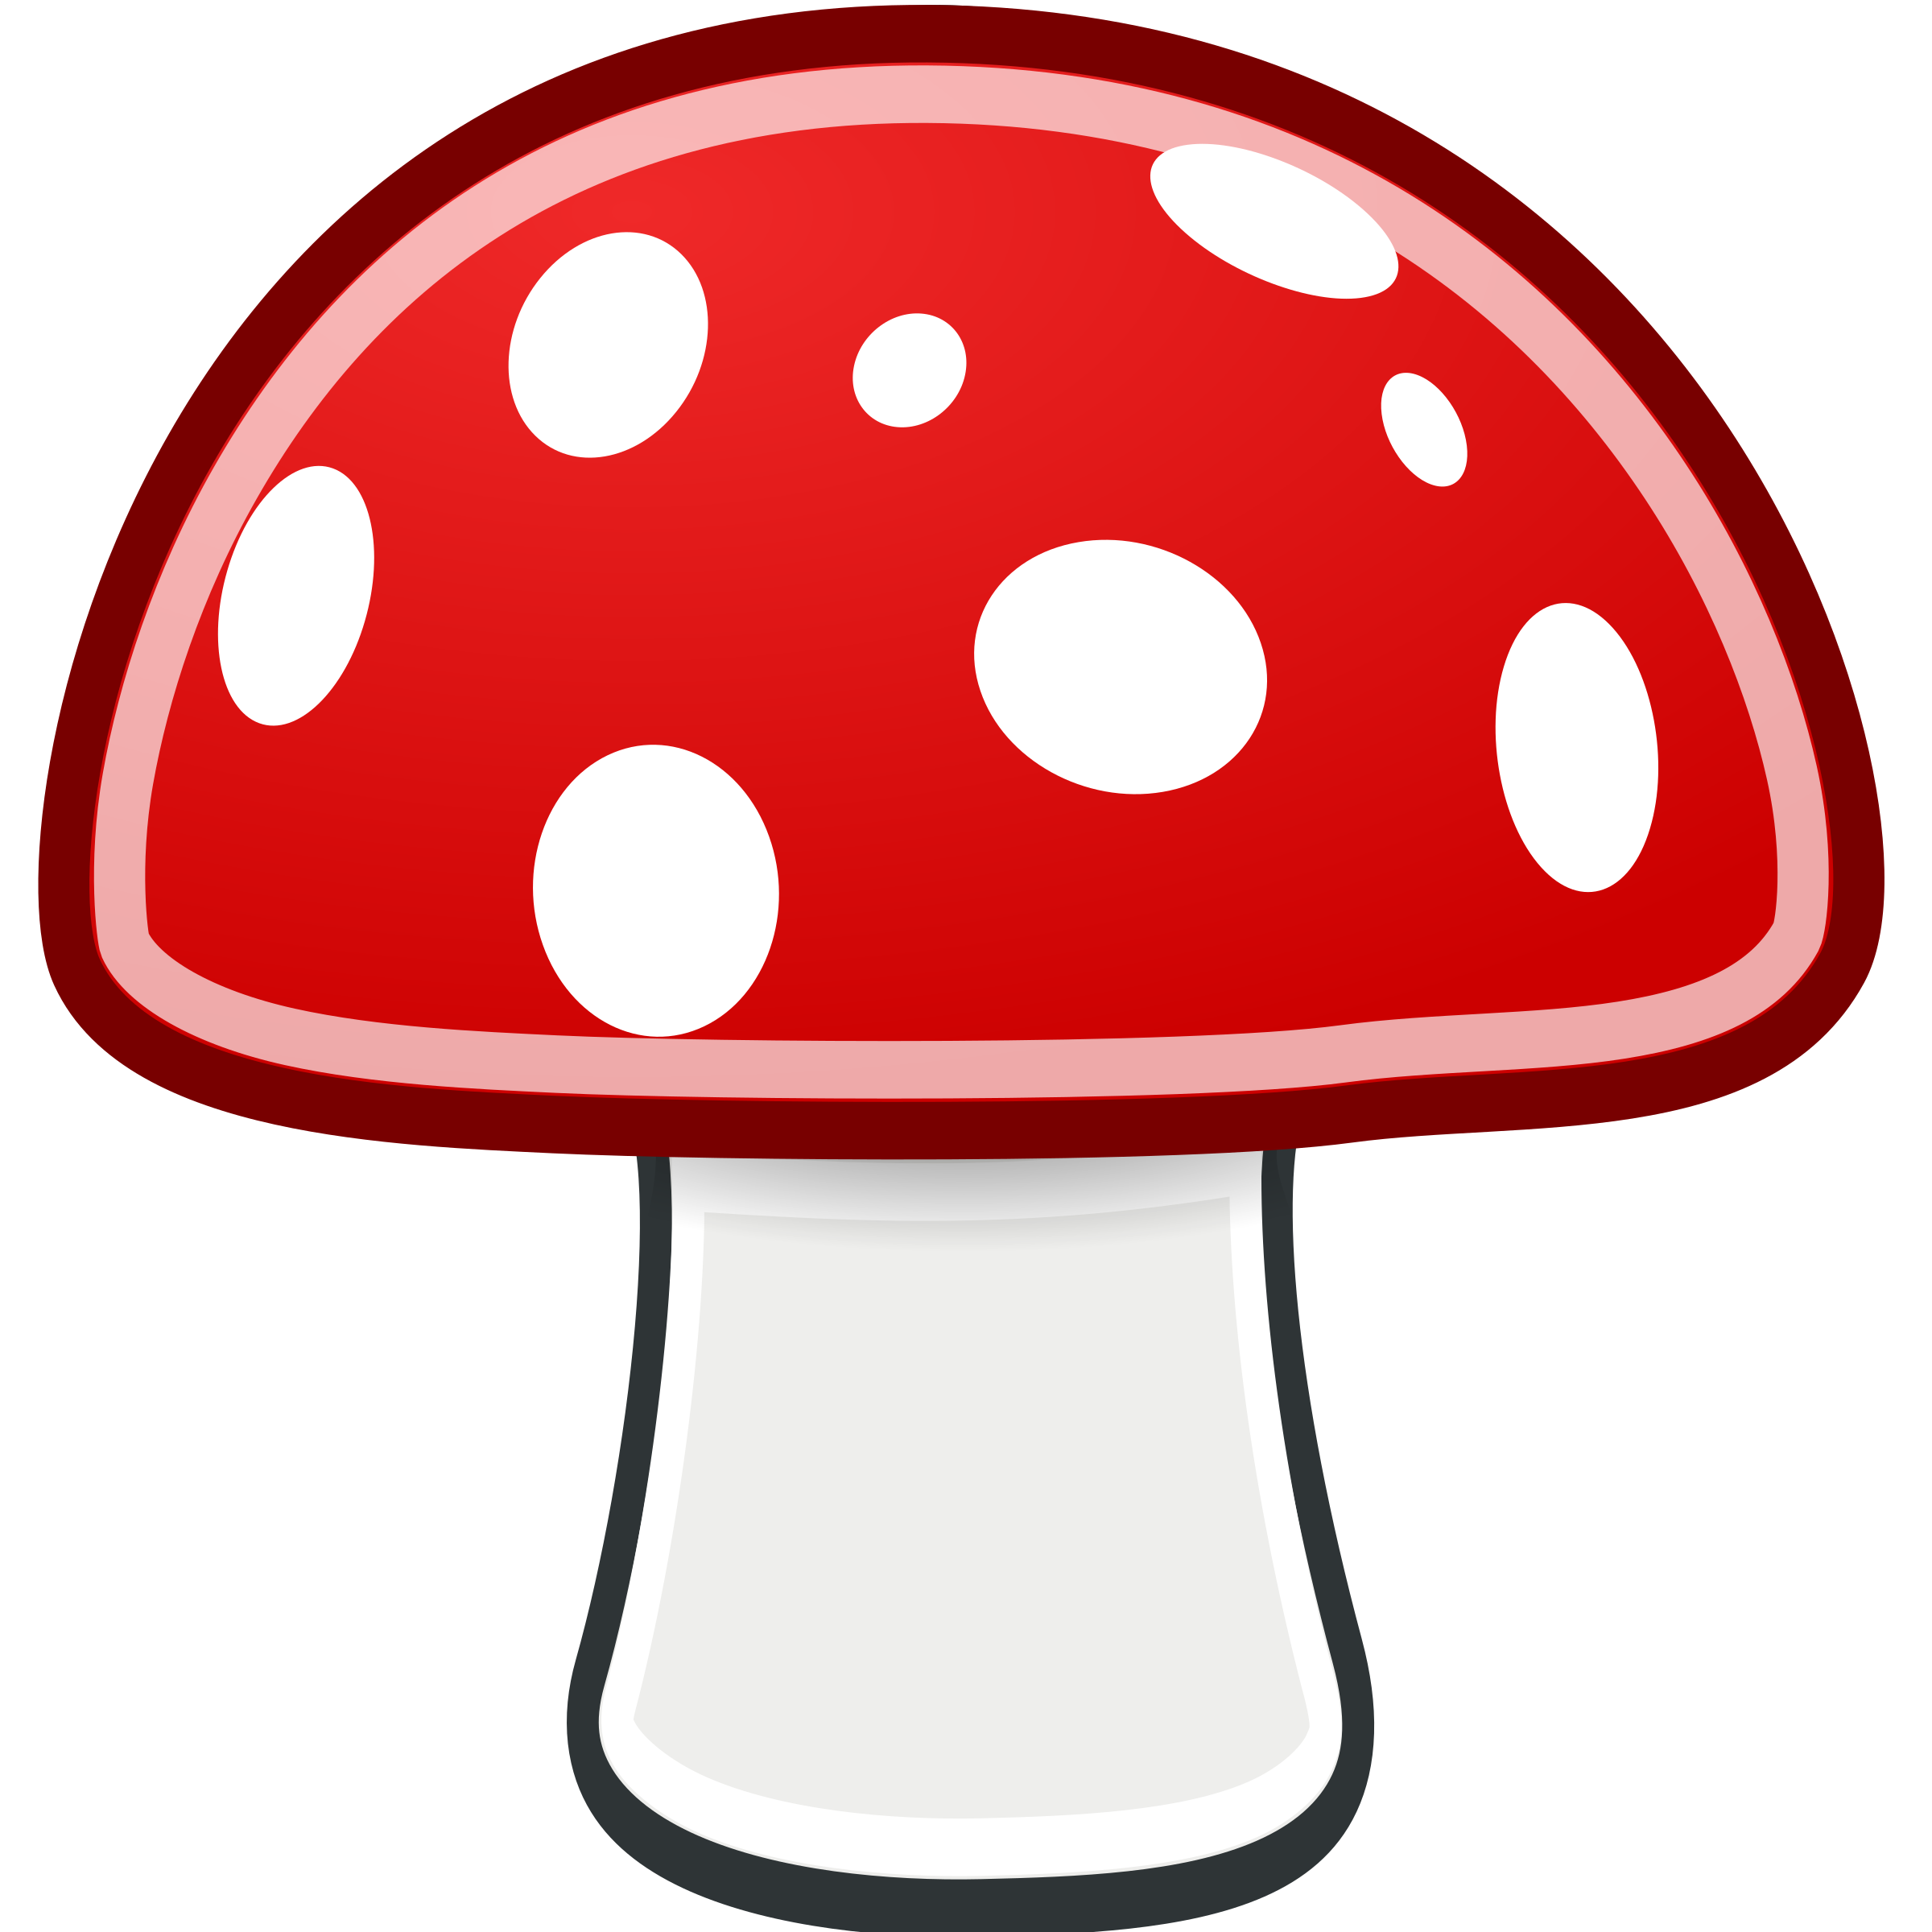 Drawing mushrooms happy. Collection of free fungian